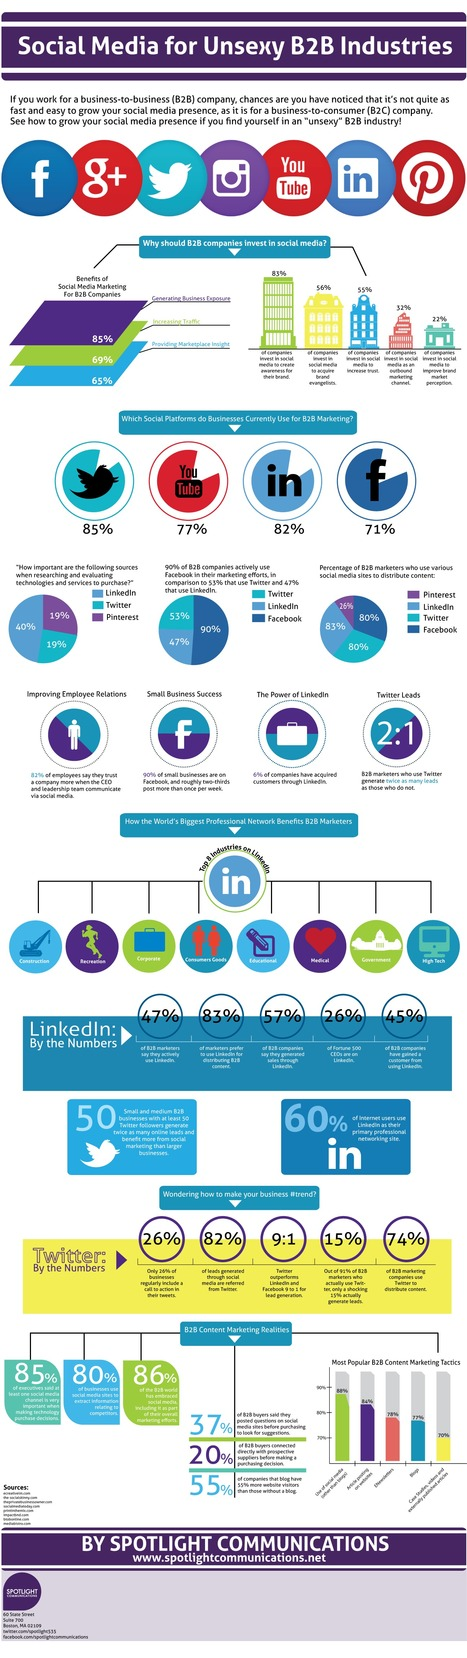 The Best Social Networks for B2B Companies [INFOGRAPHIC] | Websites | Scoop.it